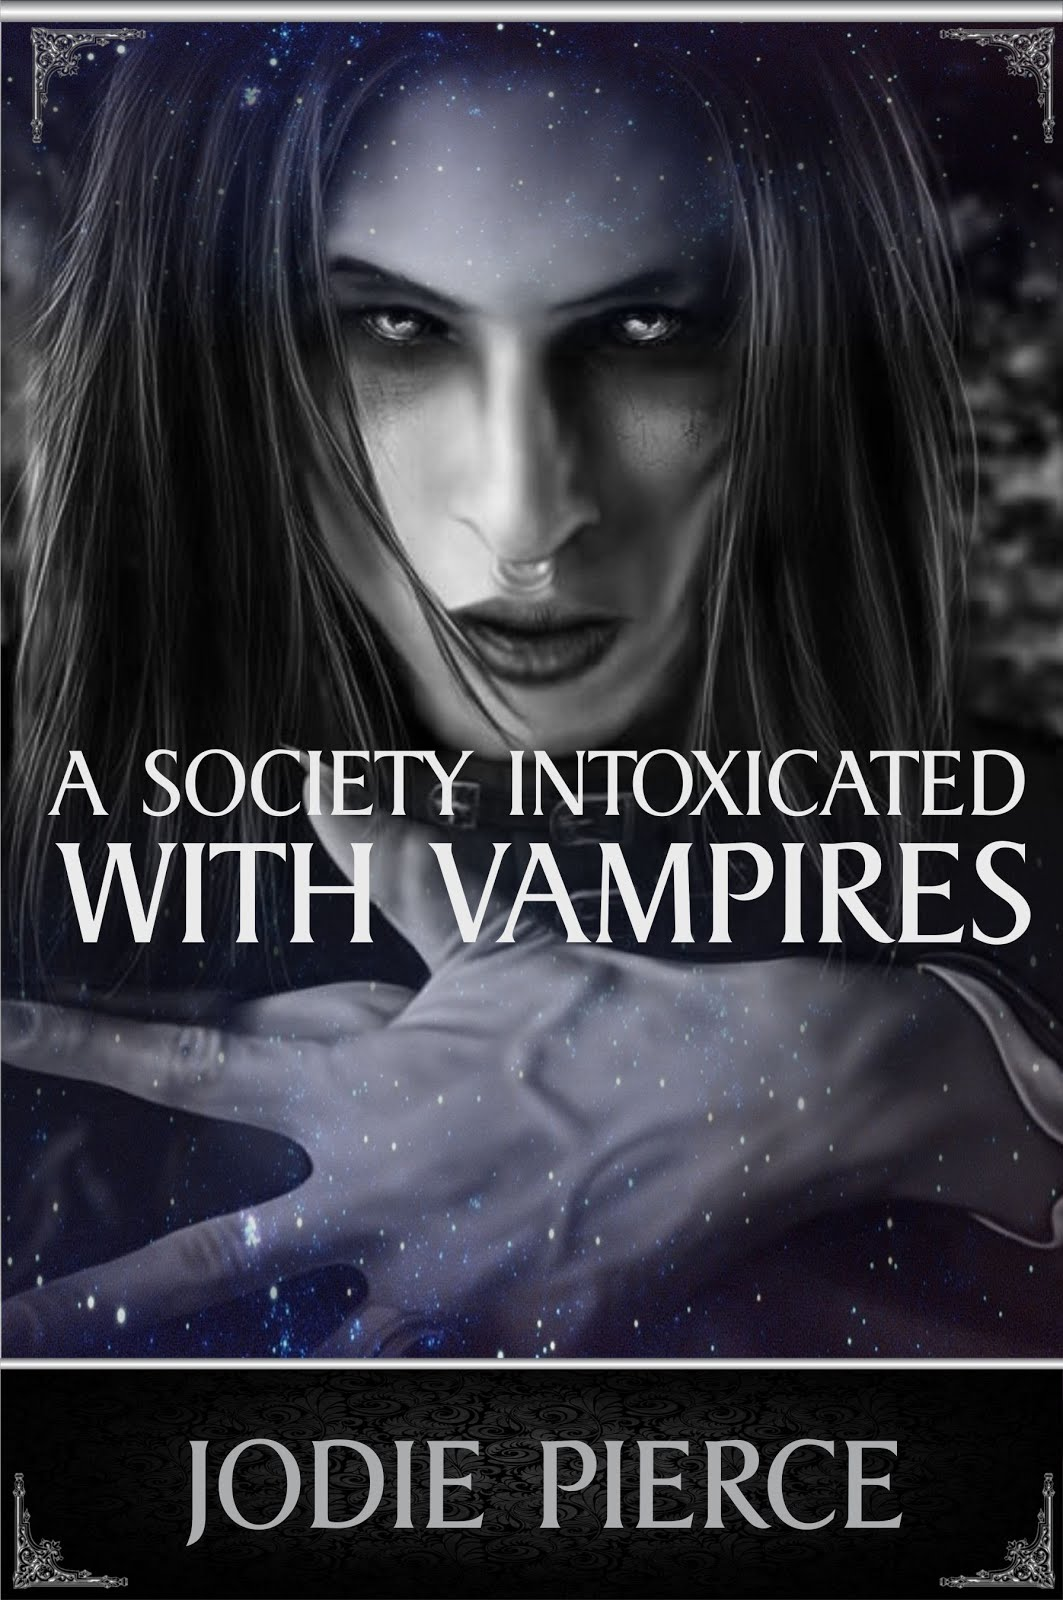 A Society Intoxicated with Vampires